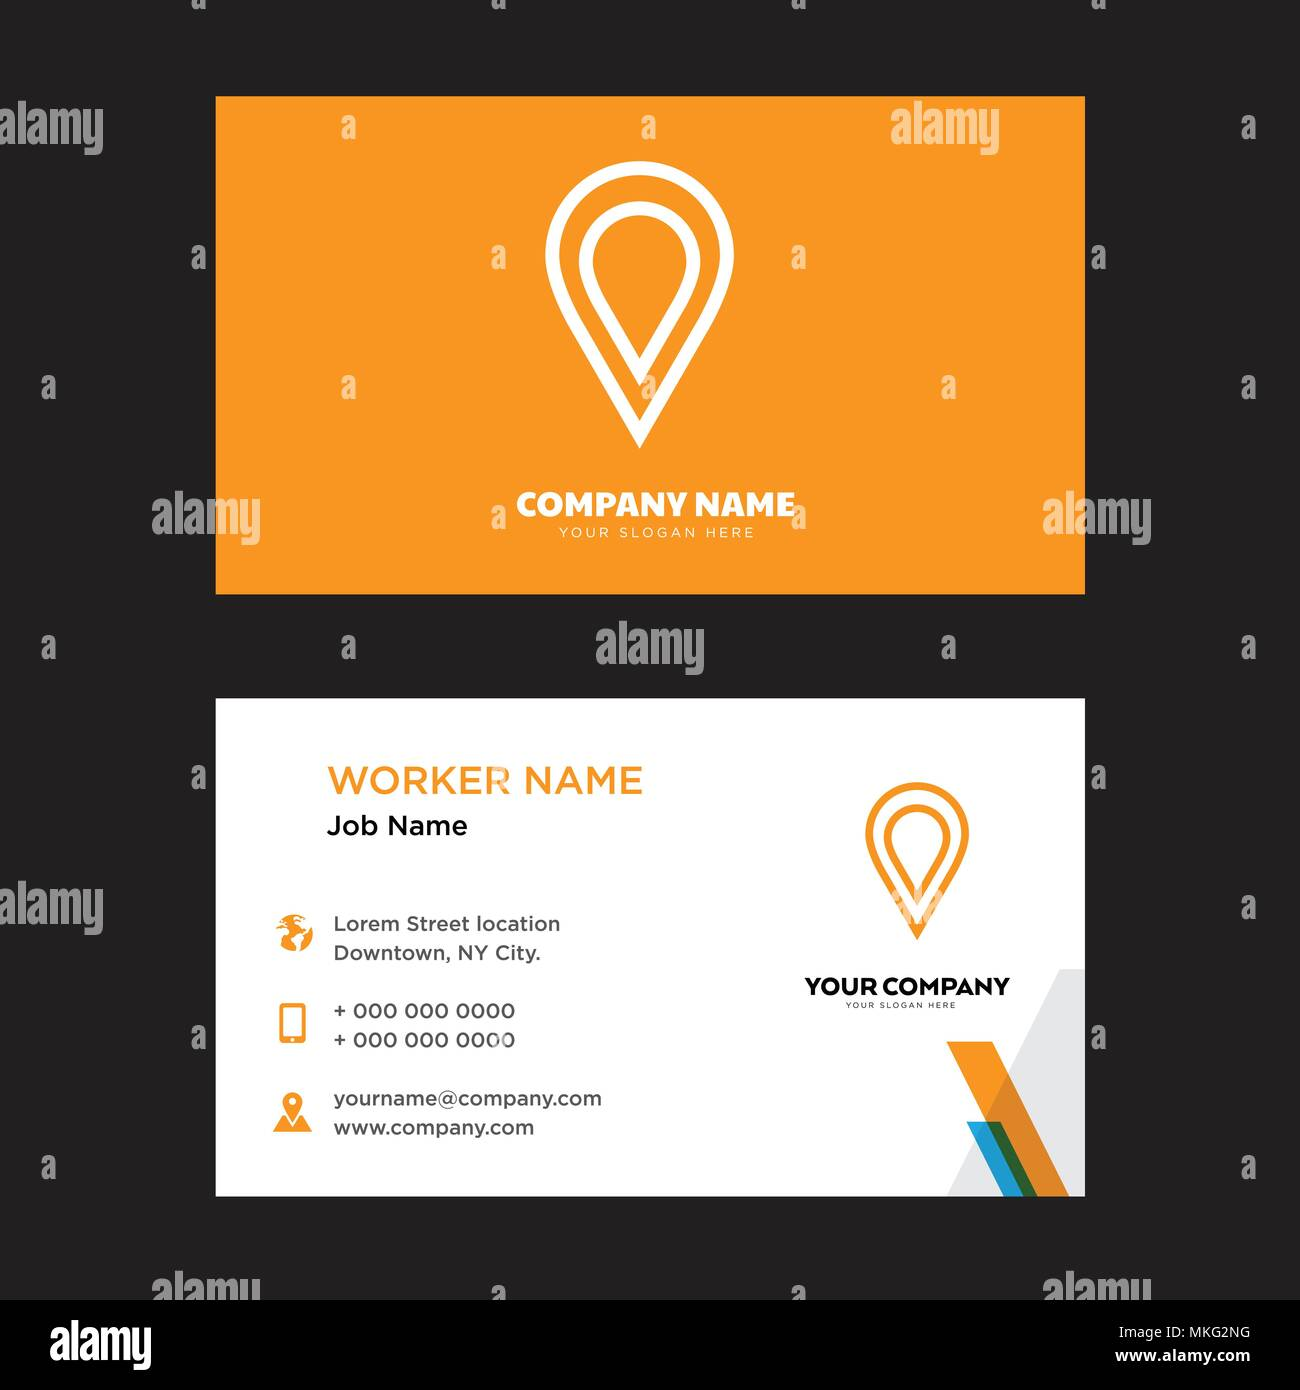 Placeholder business card design template visiting for your company placeholder business card design template visiting for your company modern horizontal identity card vector reheart Images